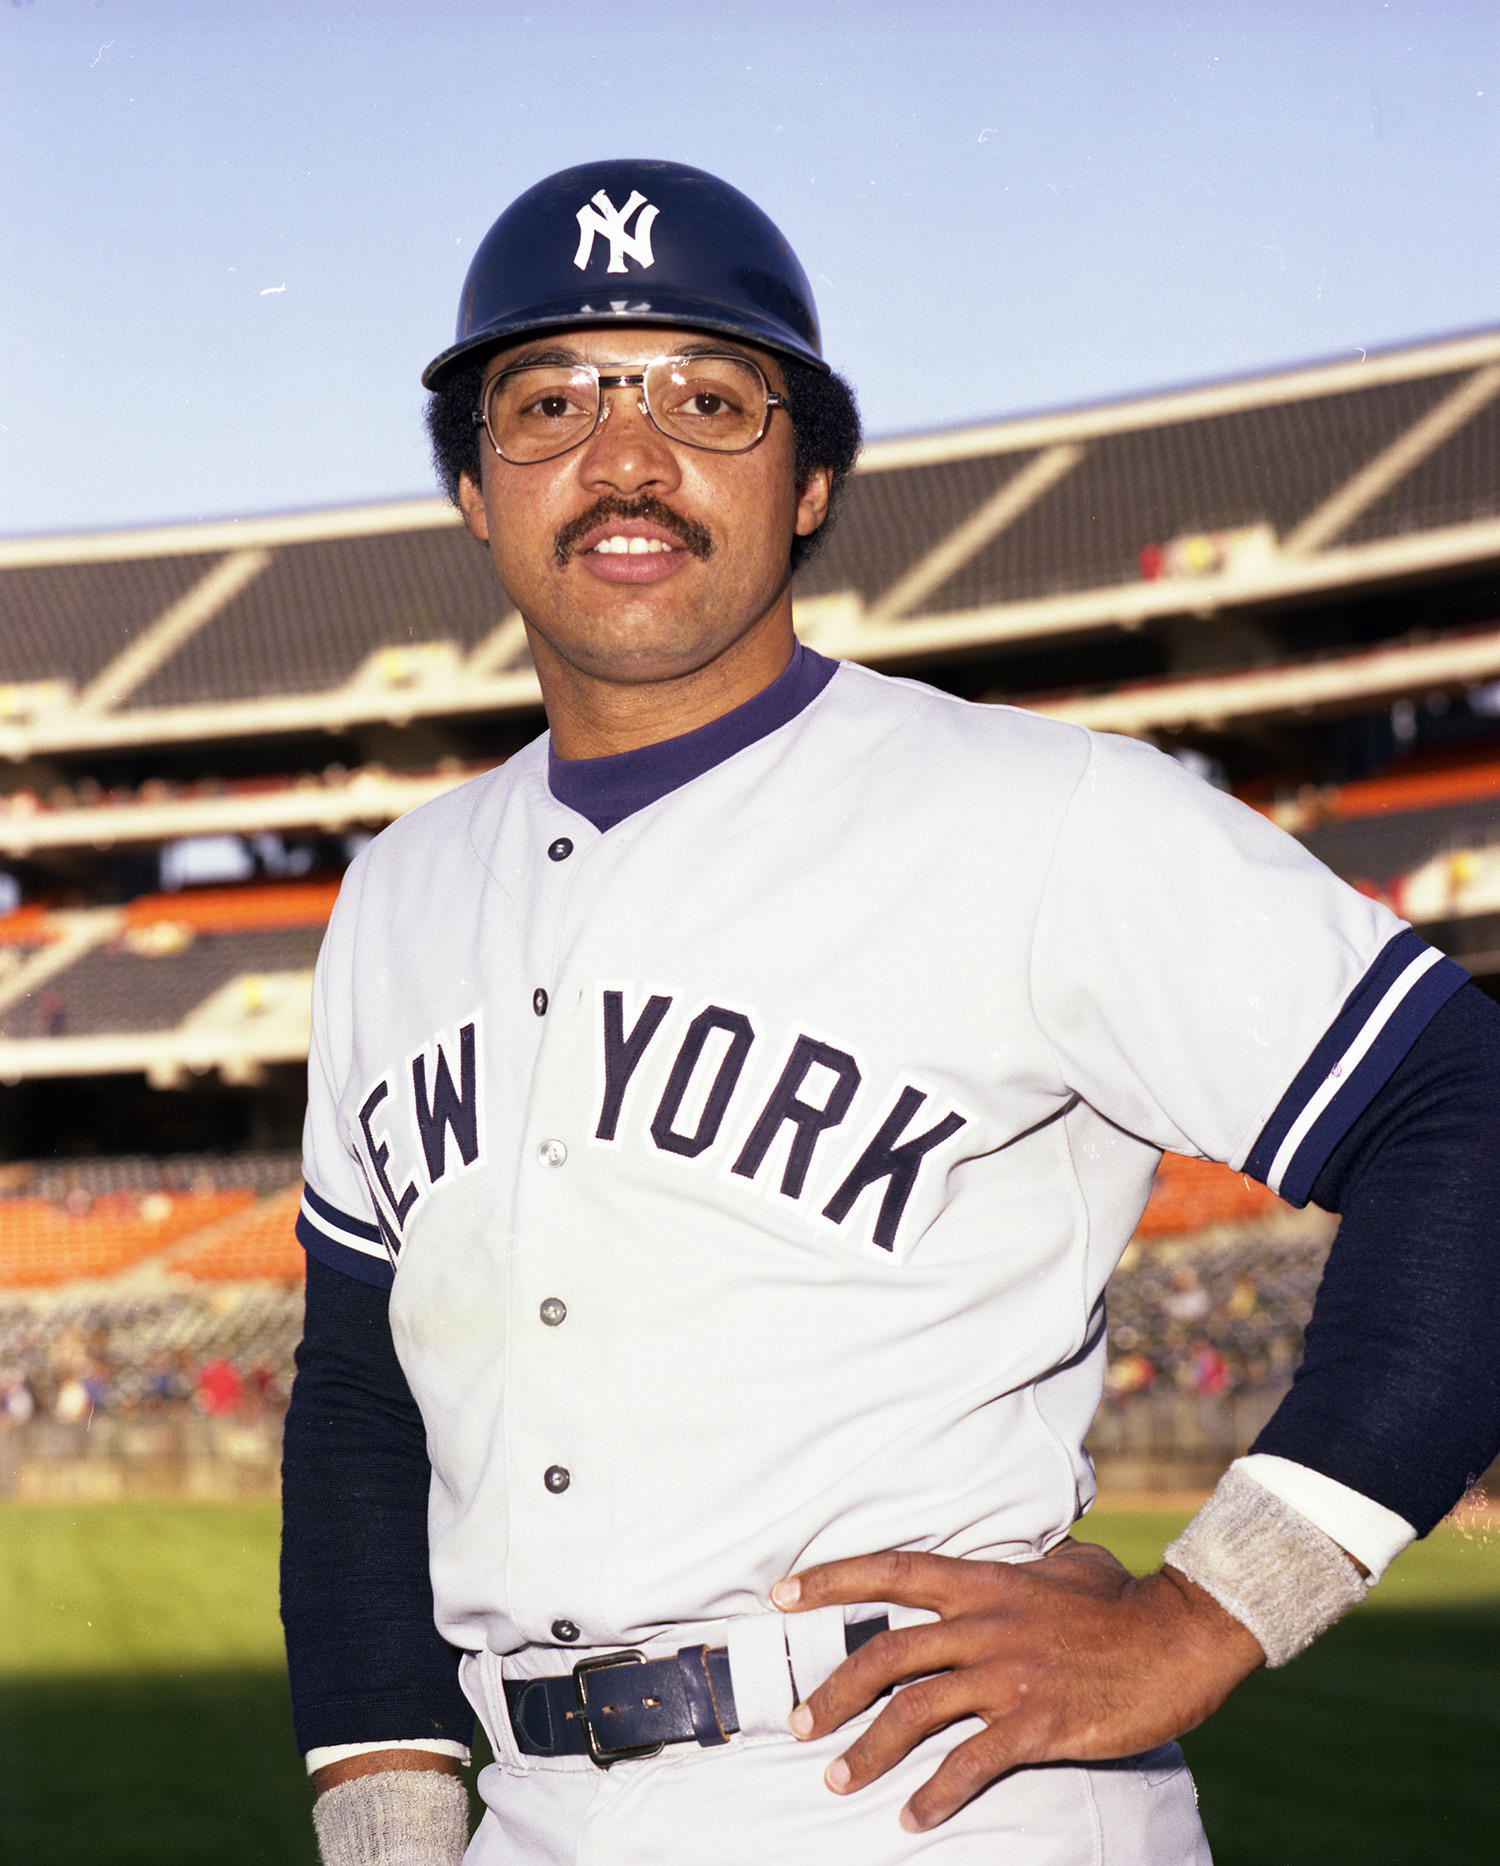 Reggie Jackson became the subject of a celebrated bidding war between several teams, including the Expos and the Yankees, in 1976. He chose the Yankees, signing a 5-year-deal for $3.5 million dollars. (Doug McWilliams / National Baseball Hall of Fame)